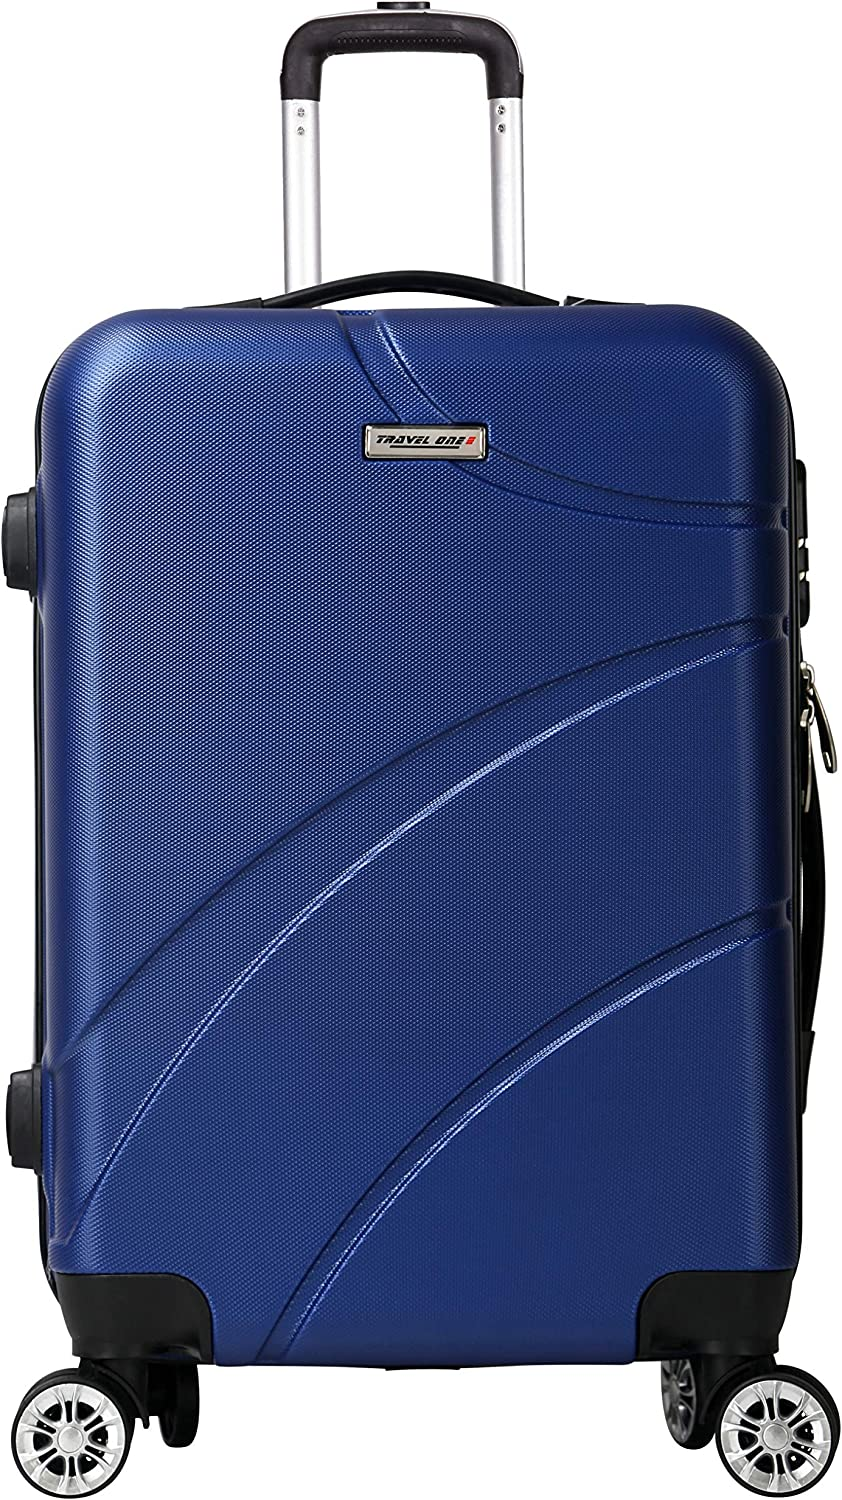 37x22x57Cm 2,3 Kg 42 L Travel One Seaview Valise Cabine Rigide 8 Roues agr/éee Low Cost Marine Taile S